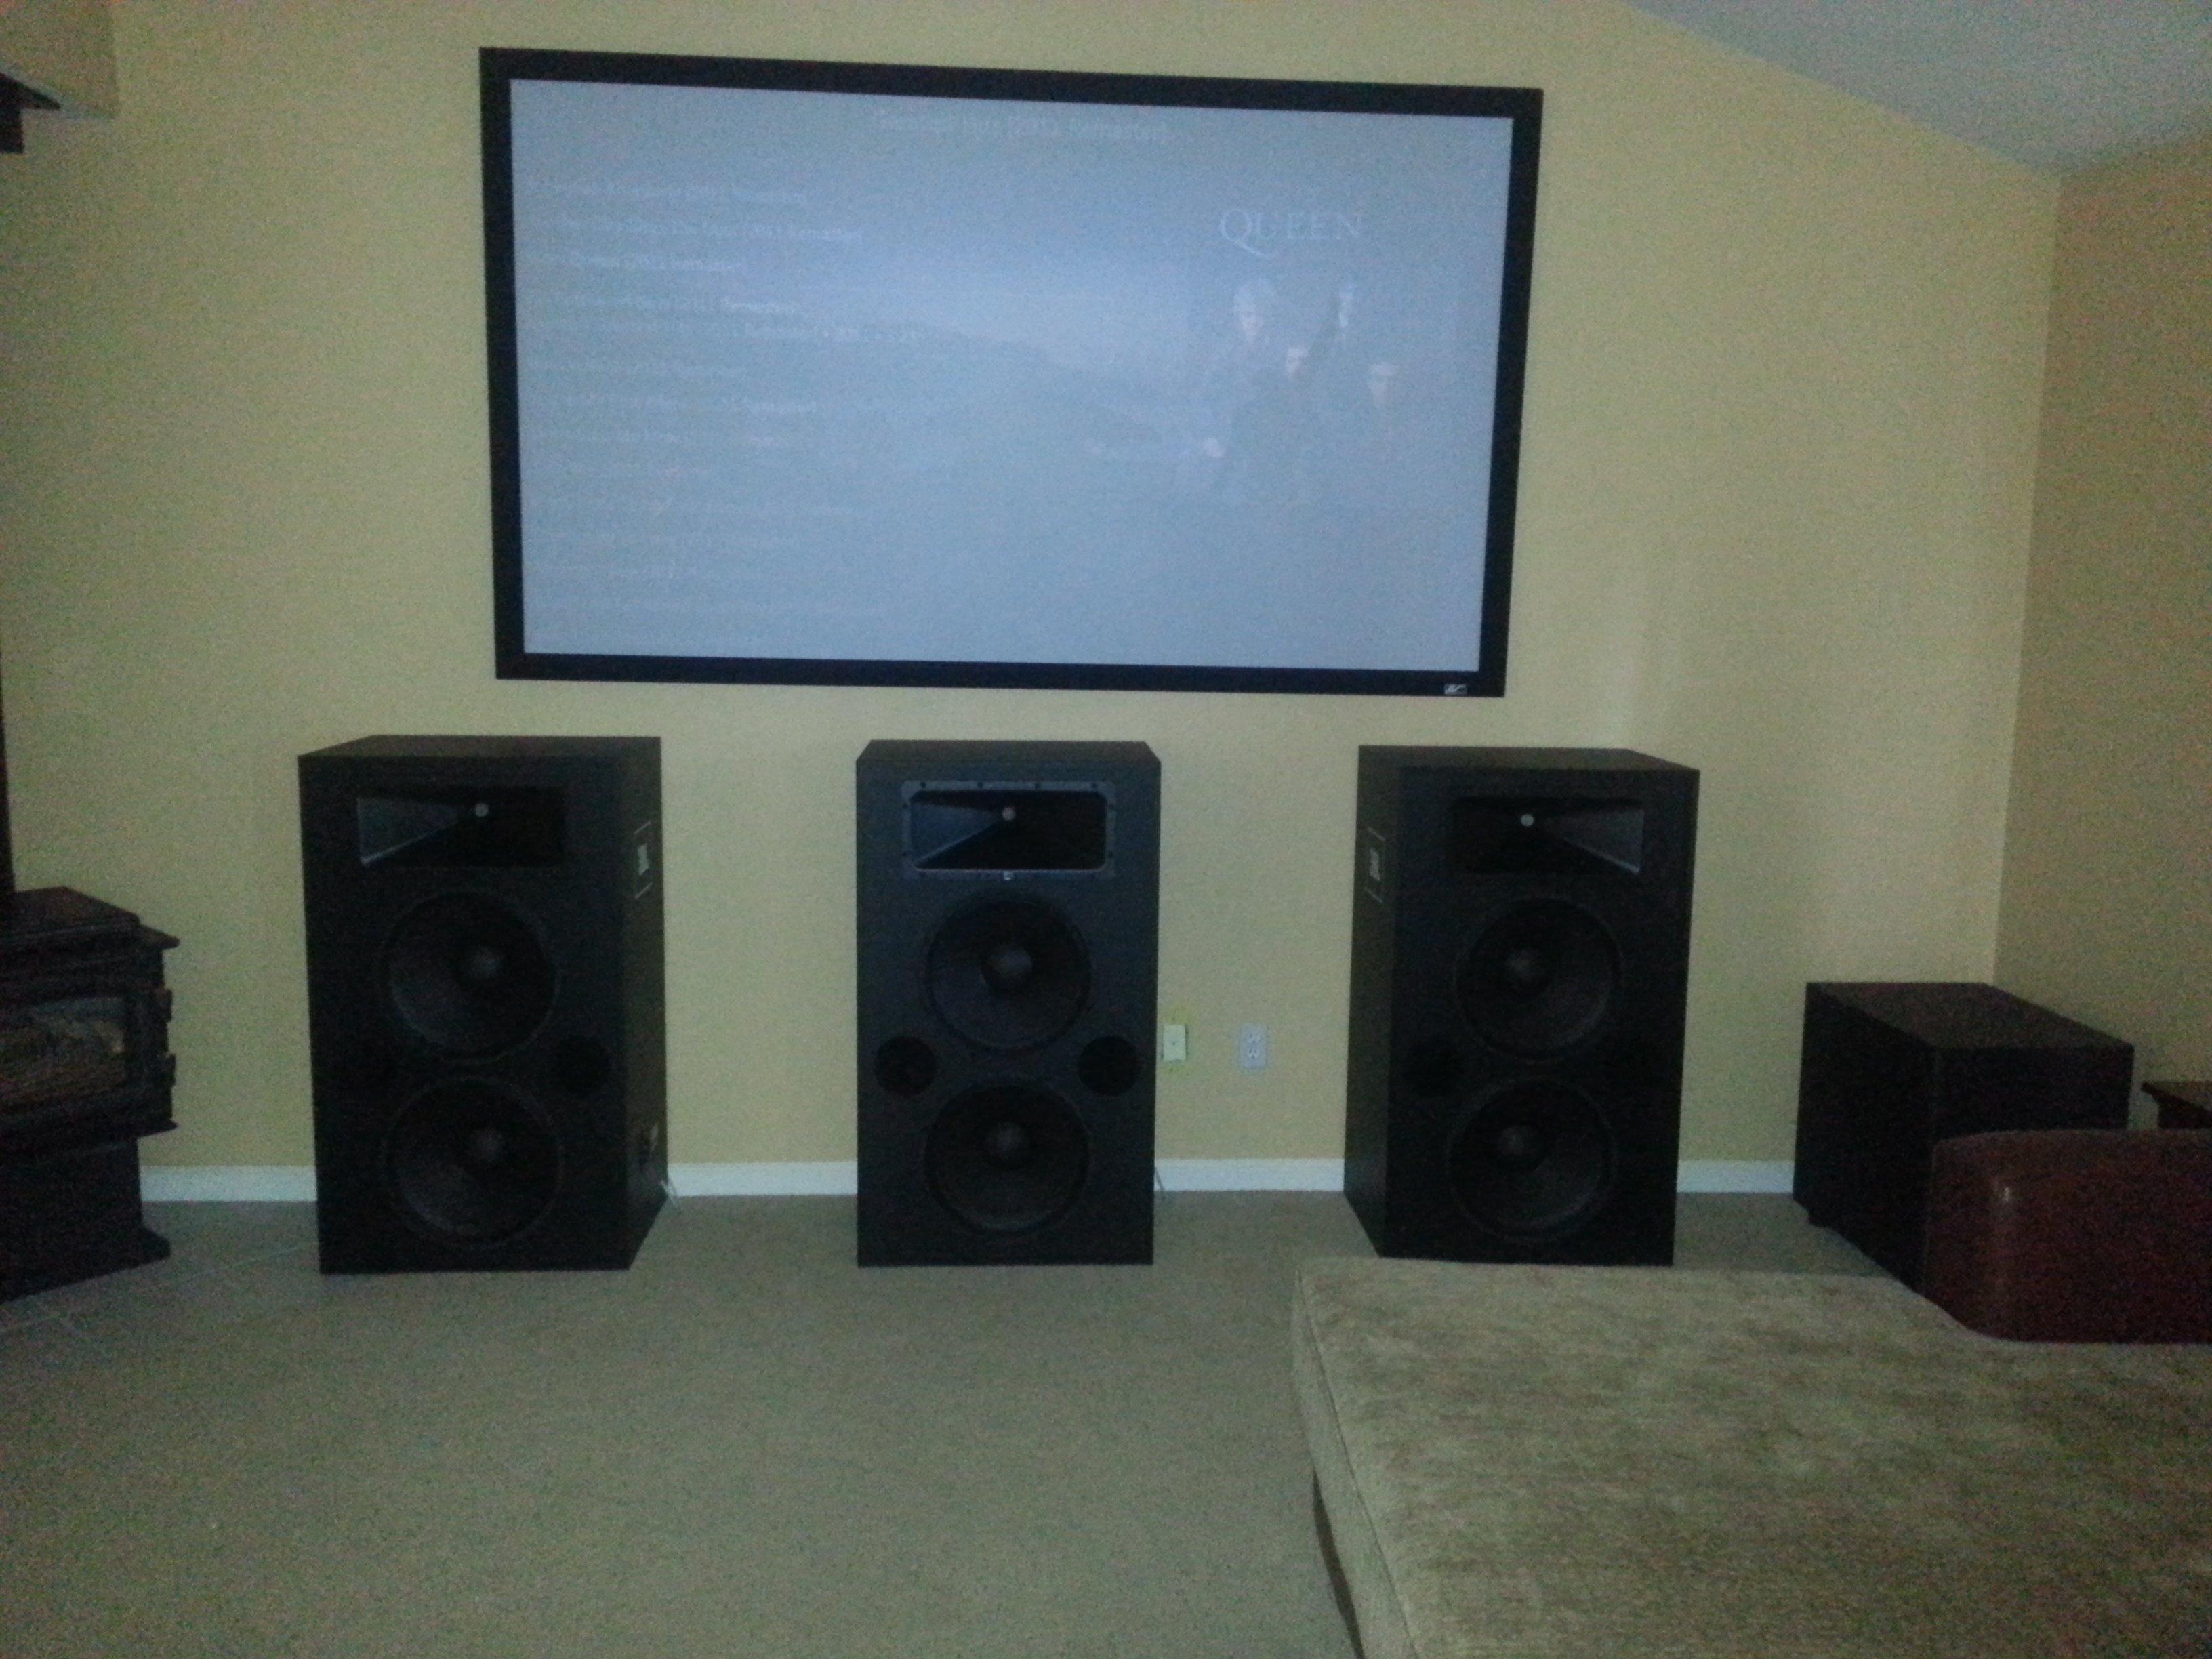 JBL Pro 3677 Have arrived!!! - Page 12 - AVS Forum | Home Theater ...